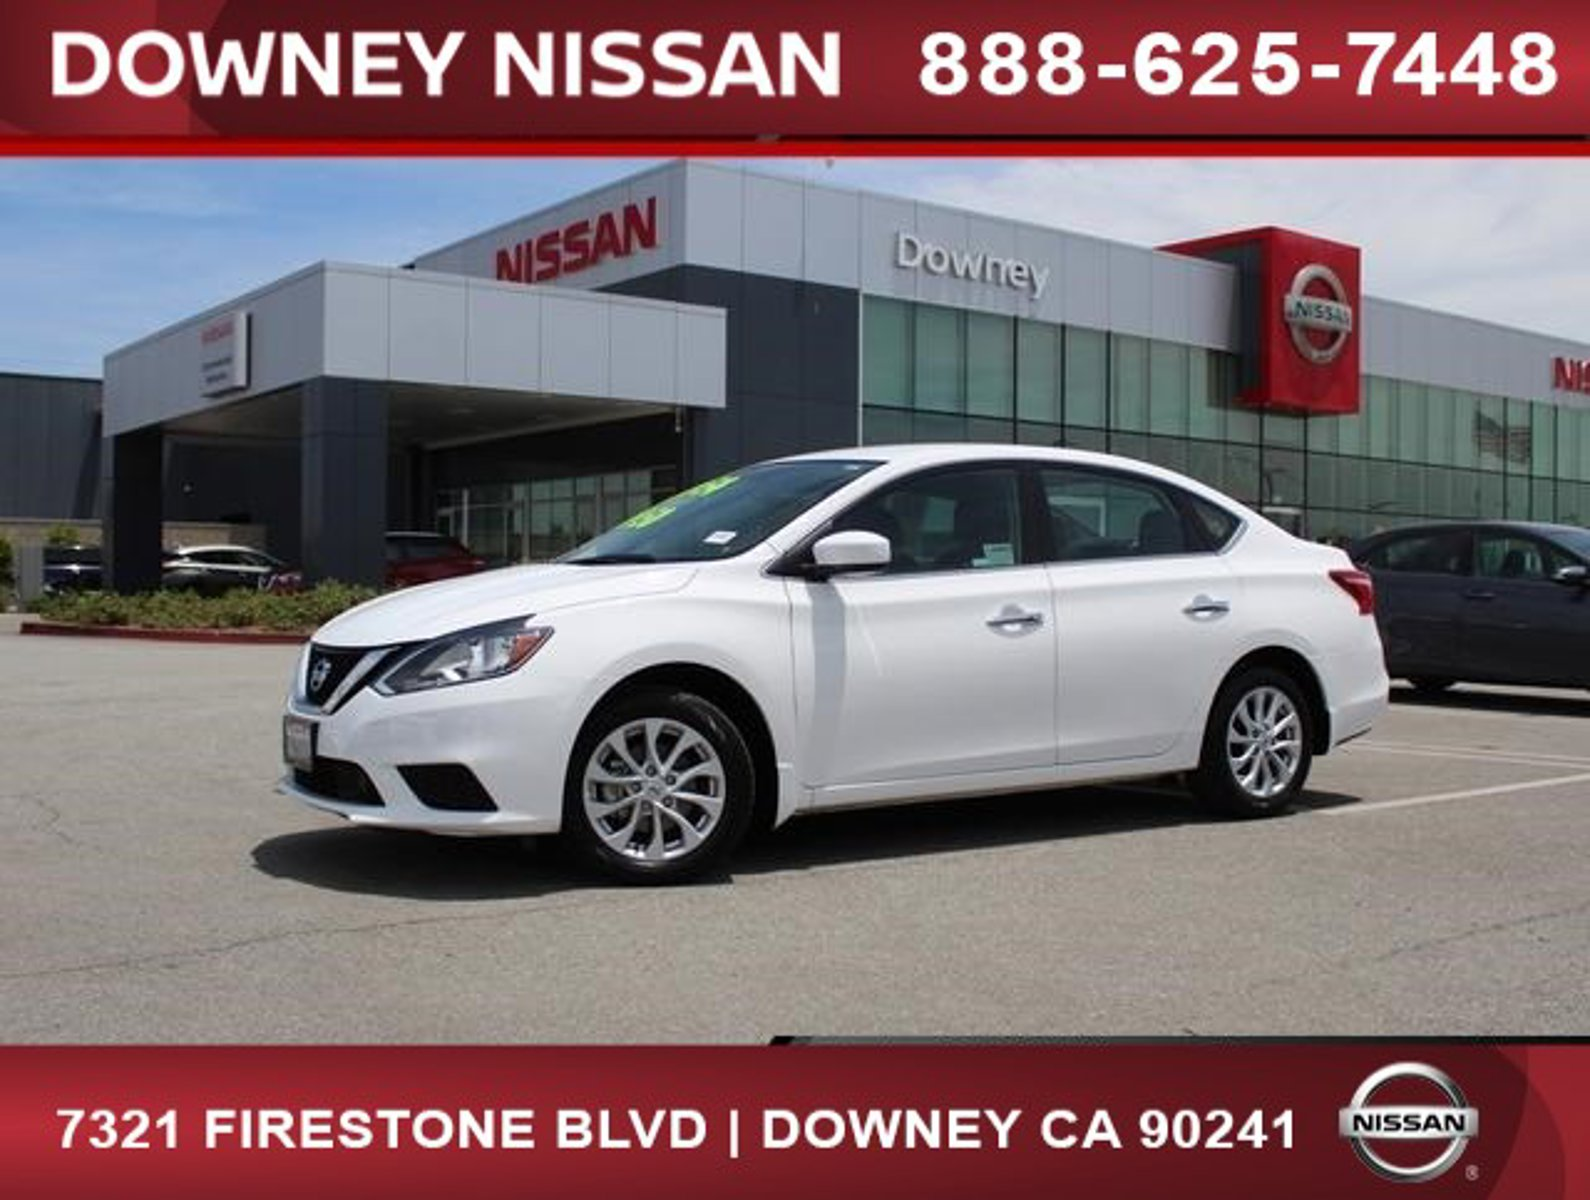 2019 Nissan Sentra SV SV CVT Regular Unleaded I-4 1.8 L/110 [21]